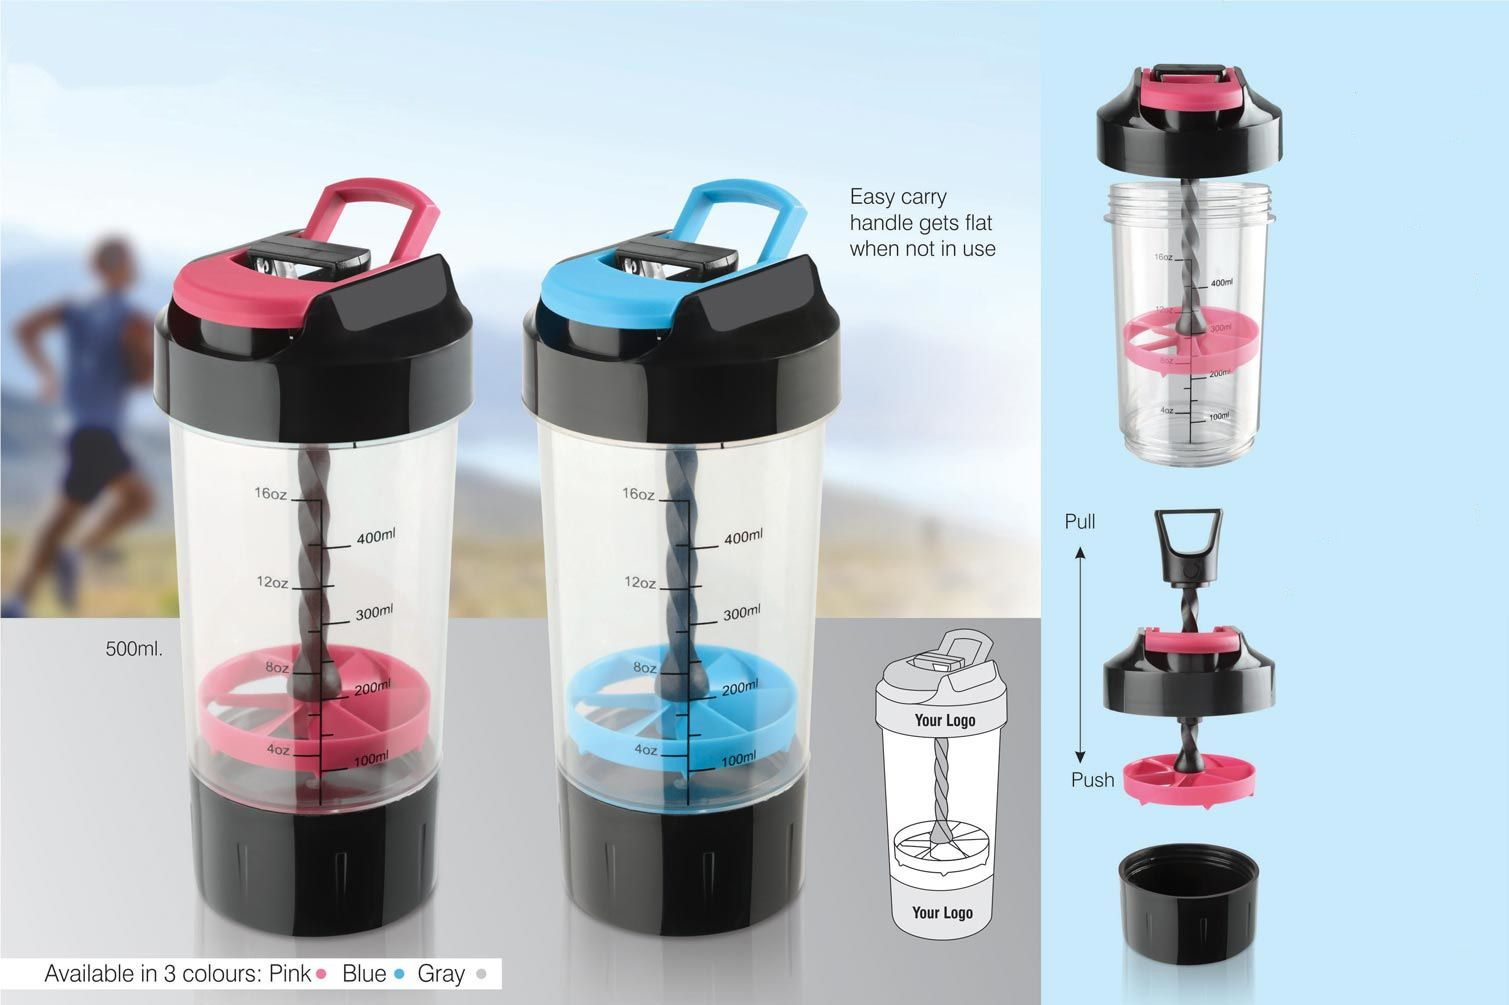 Power Plus Blizzard Shaker With Mixer Handle (With Supplement Basket) E220